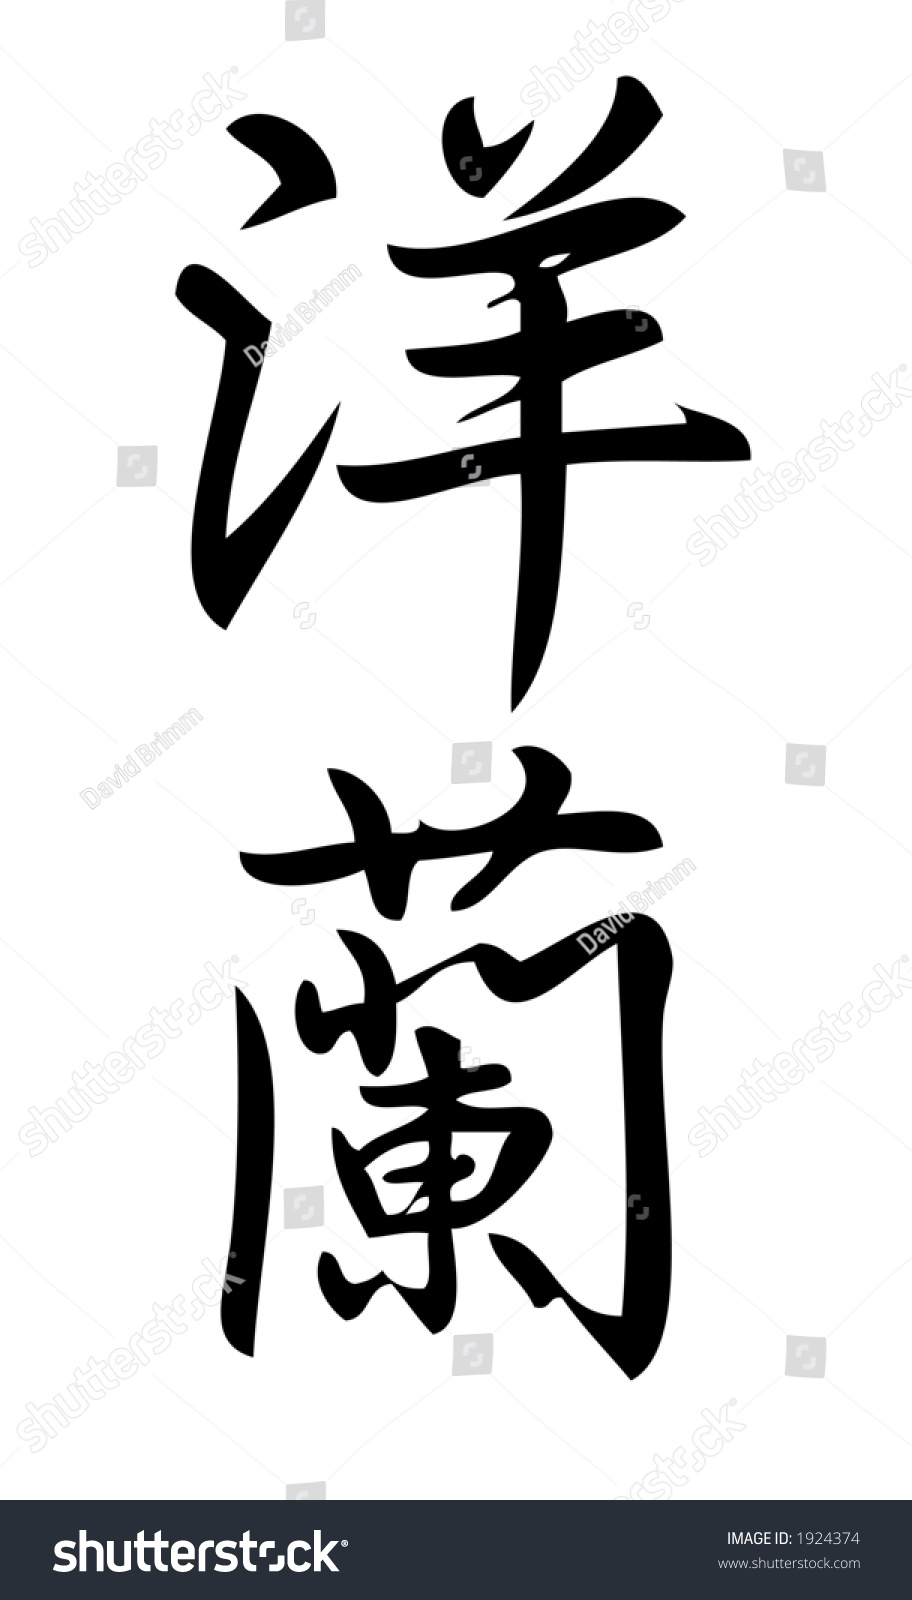 Kanji character orchid kanji one three stock illustration 1924374 kanji character for orchid kanji one of three scripts used in the japanese language biocorpaavc Choice Image